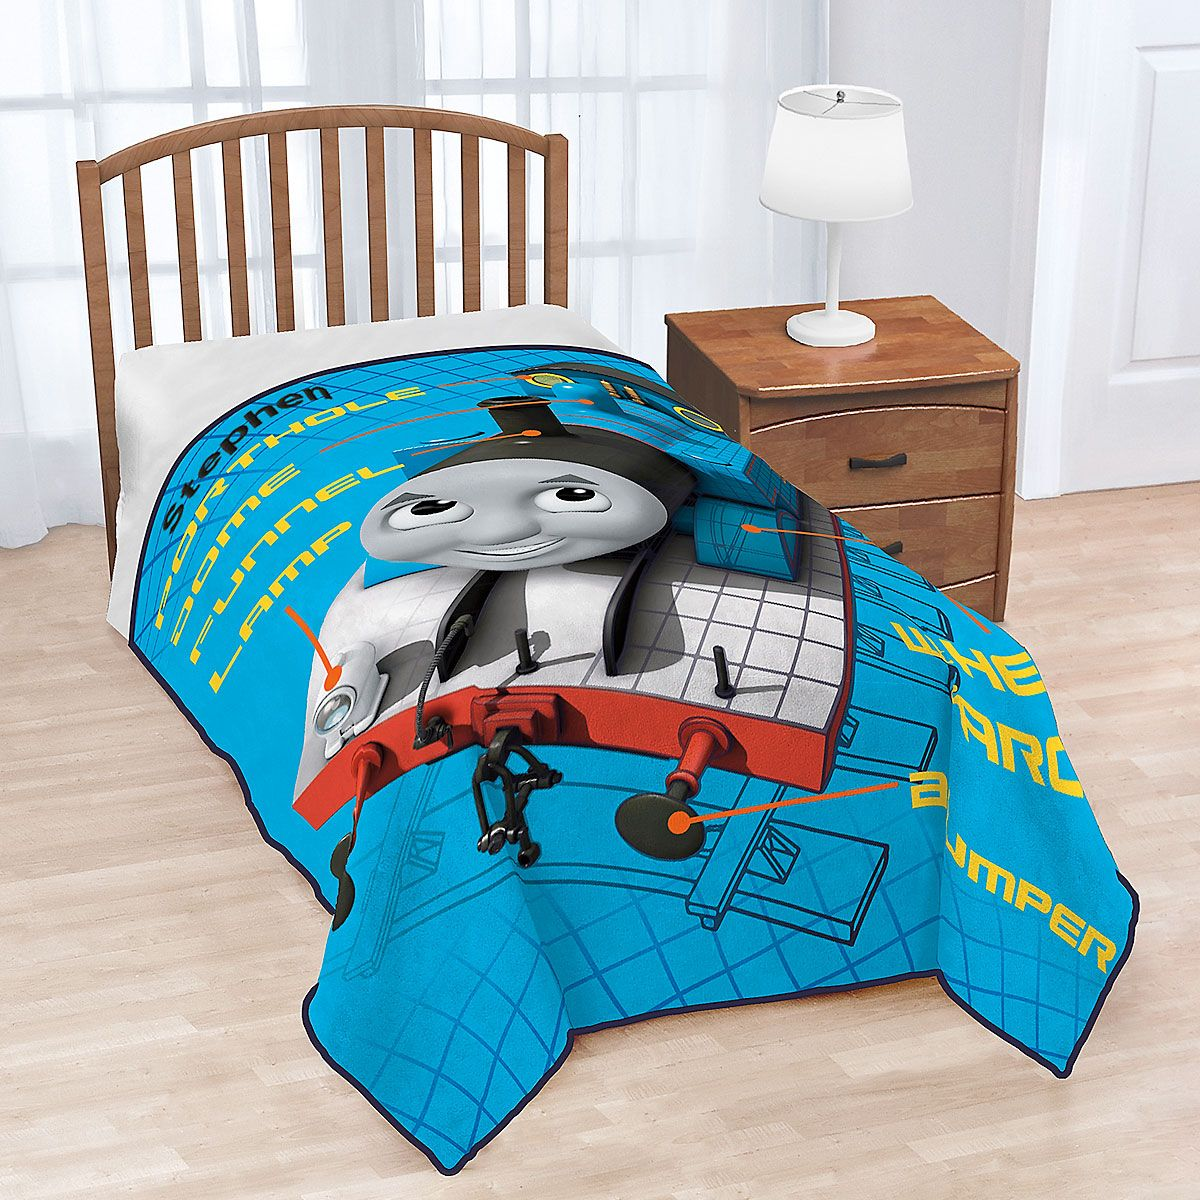 Thomas the Train Over-Sized Personalized Fleece Blanket